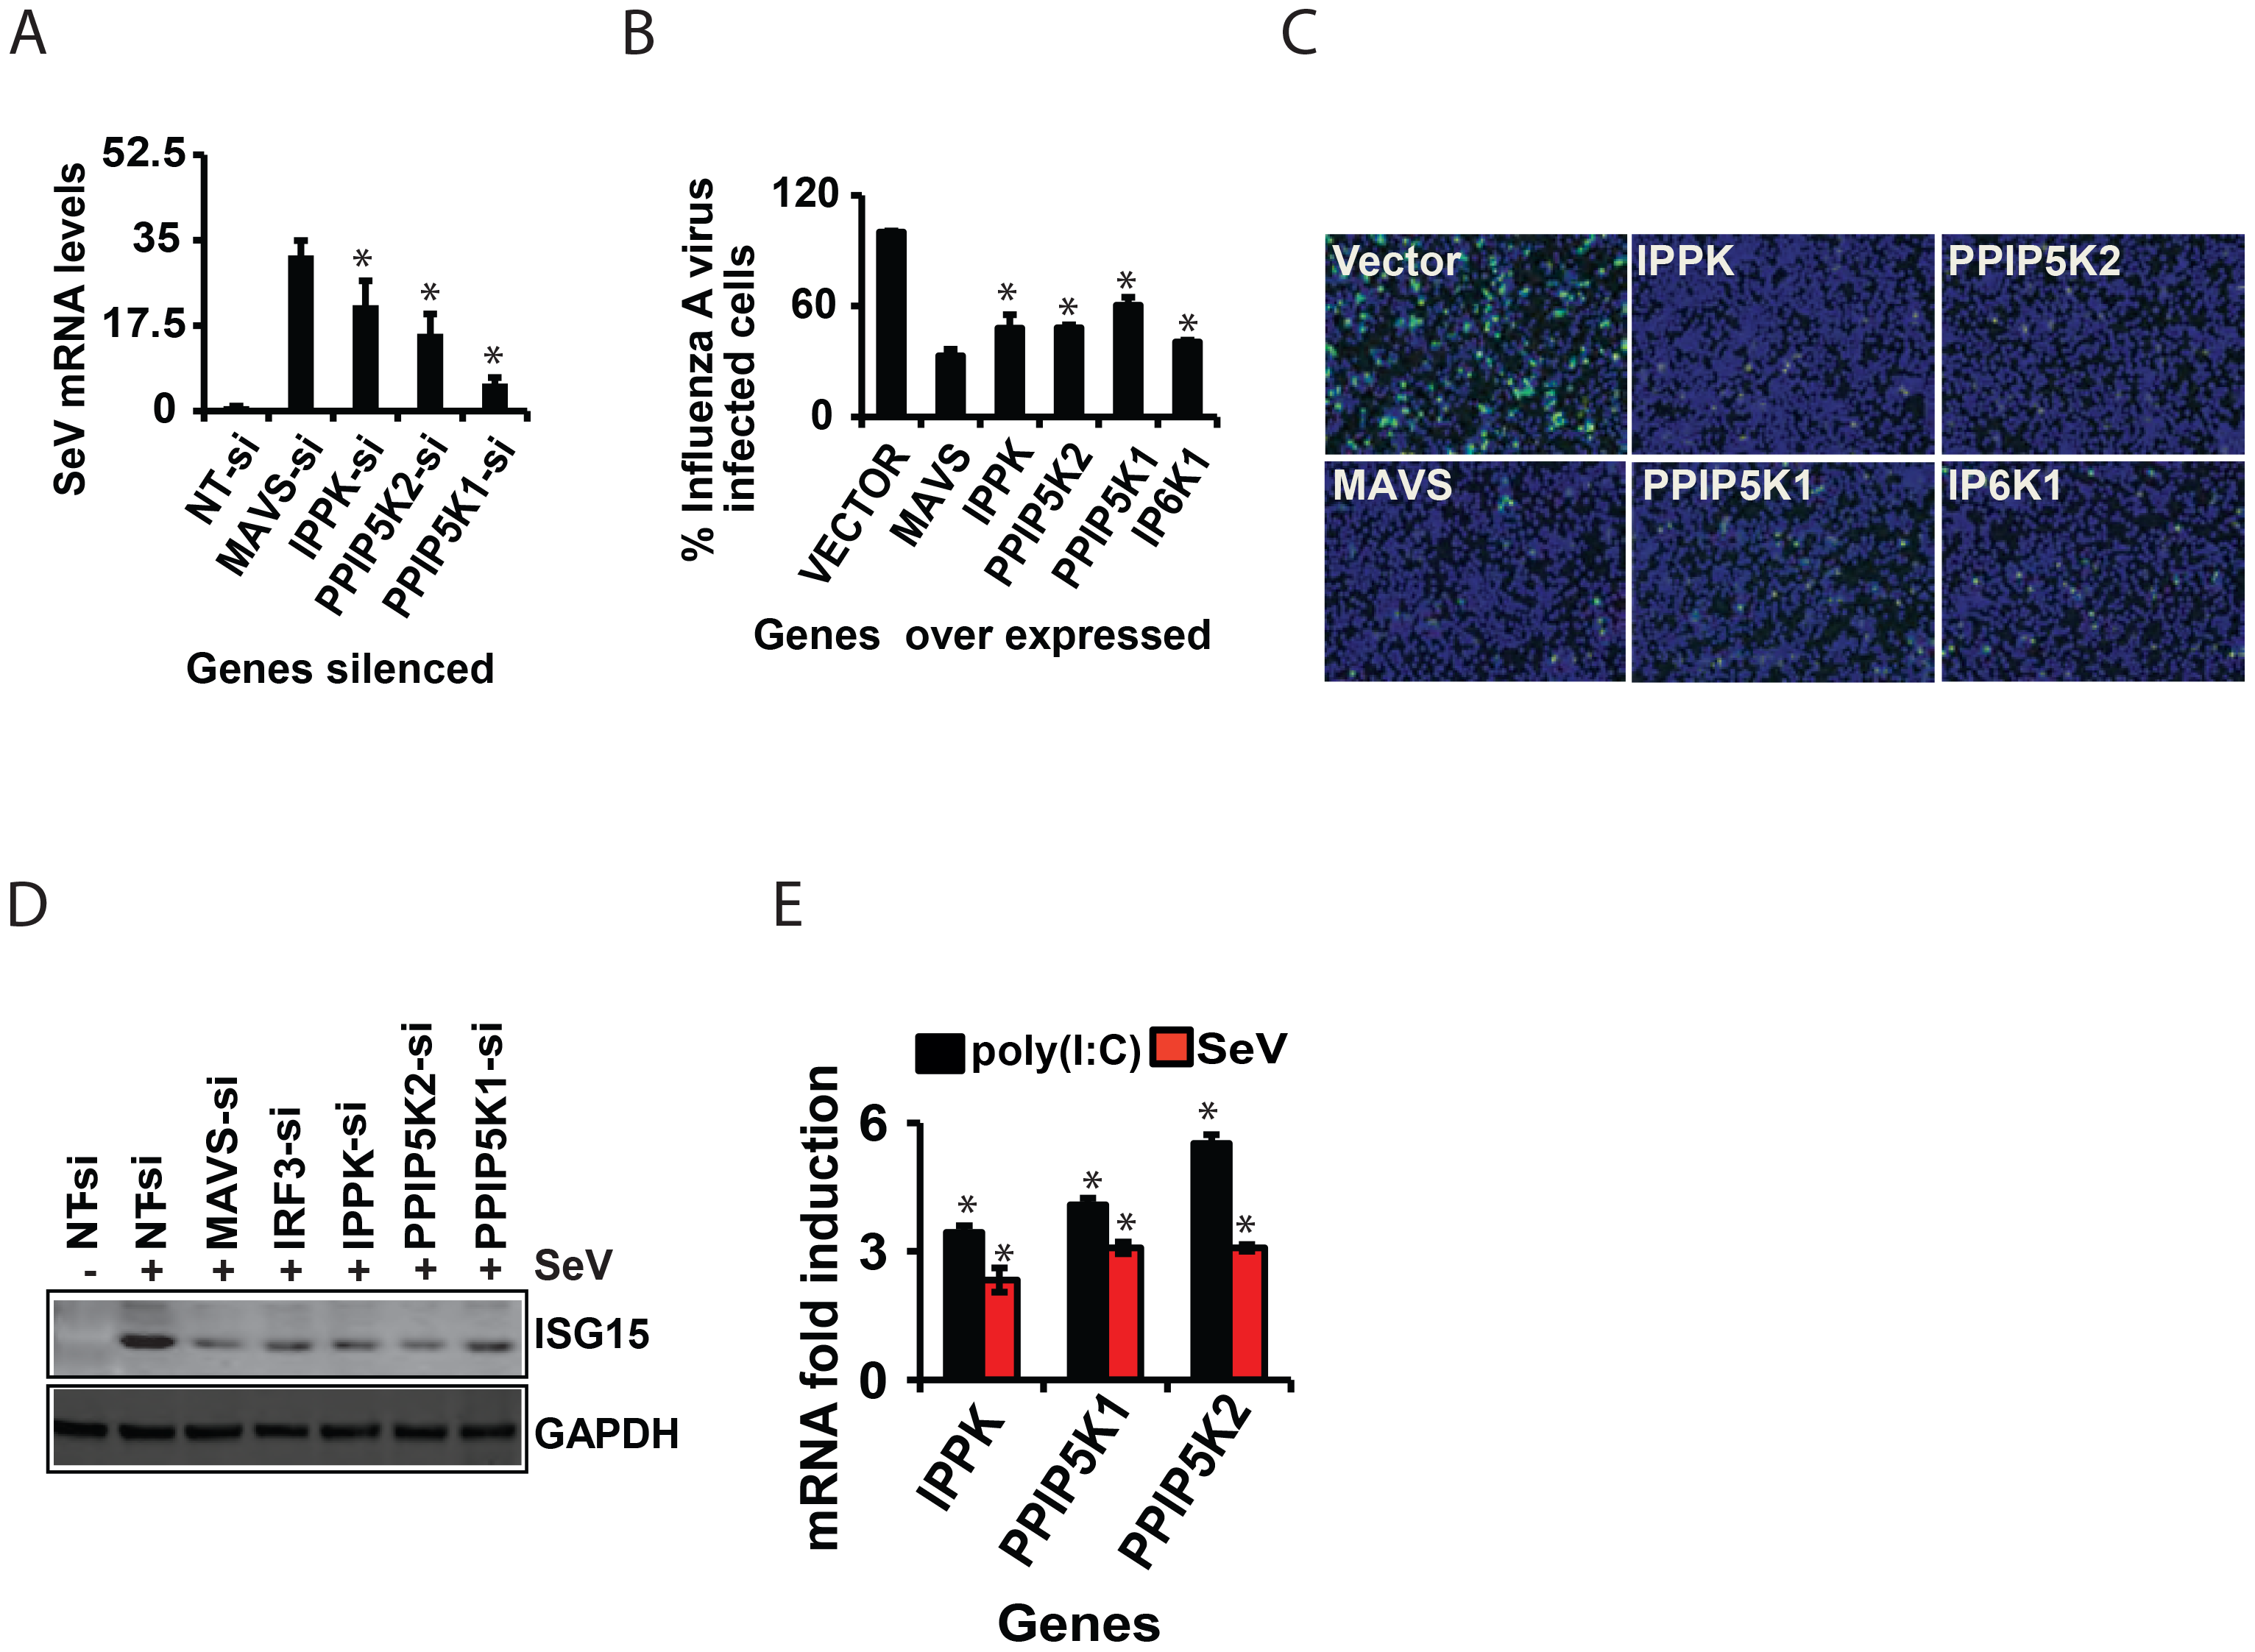 Inositol pyrophosphates synthesis pathway is required for cellular antiviral immunity.